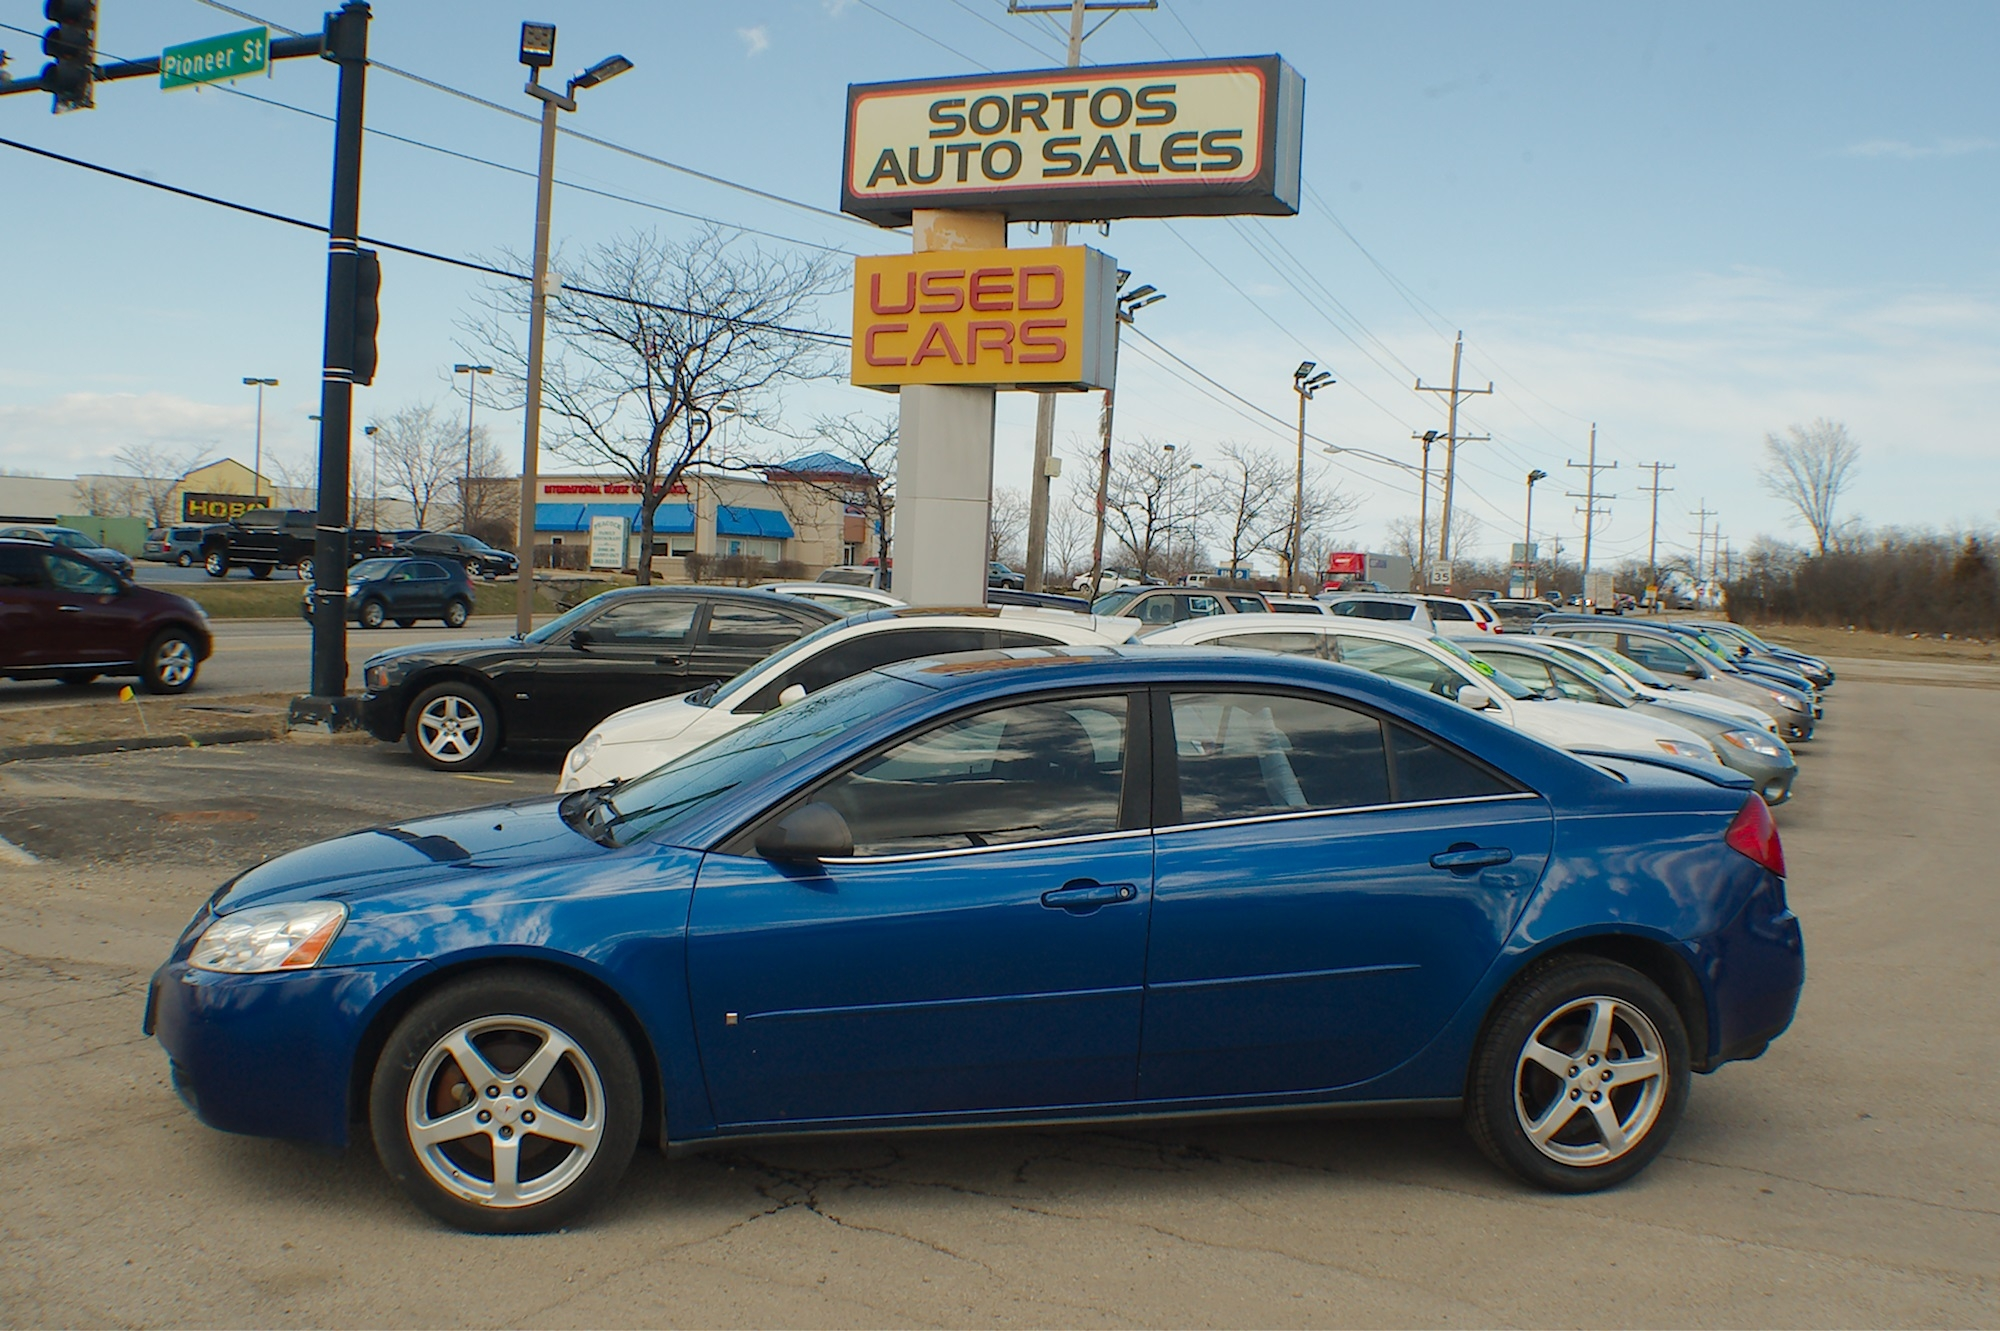 2007 Pontiac G6 Blue Sedan Used Car Sale Antioch Zion Waukegan Lake County Illinois